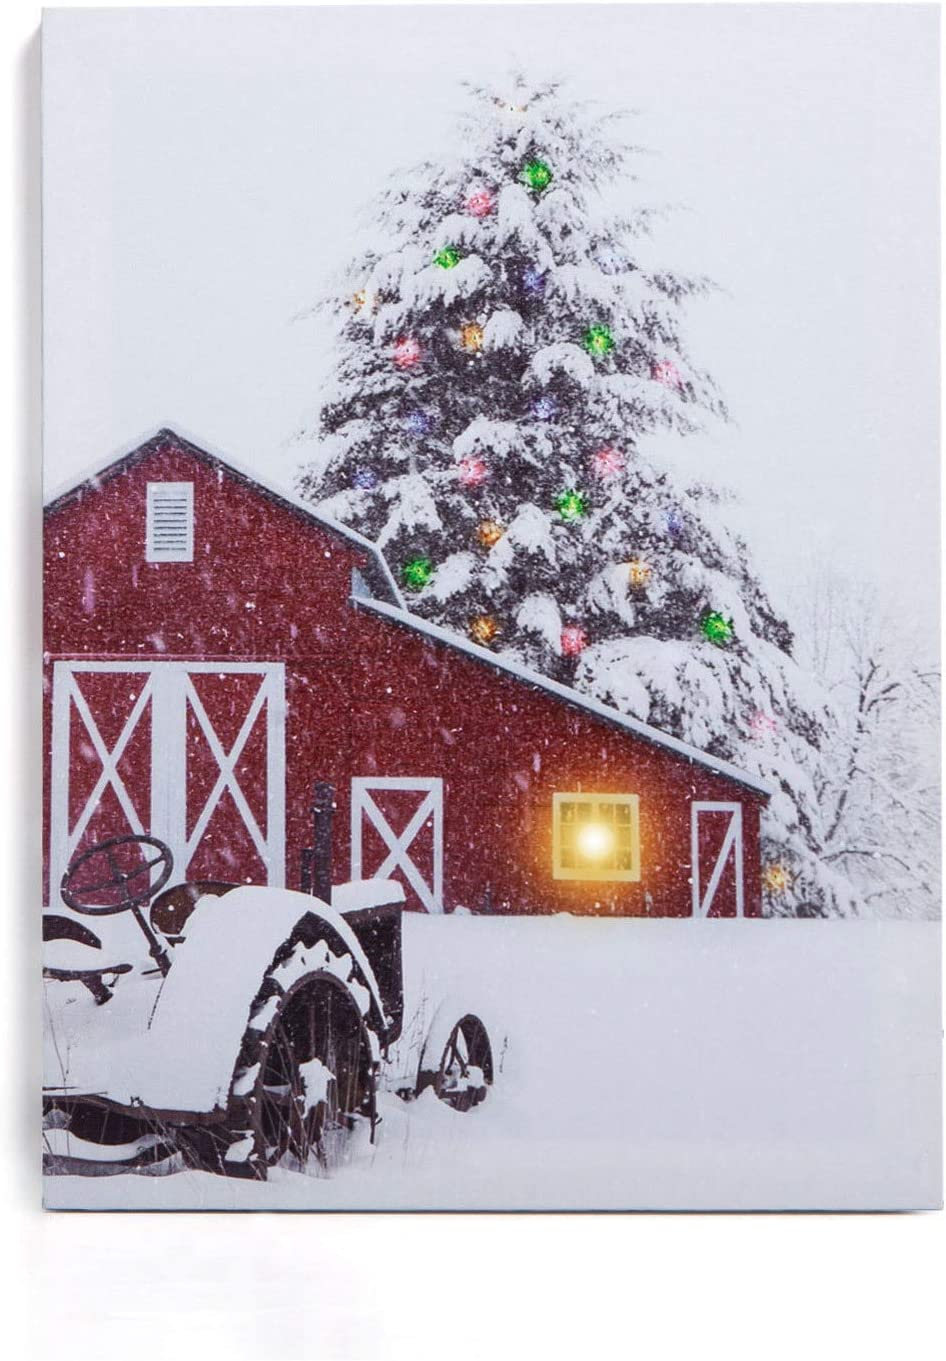 Amazon Com Nikky Home 16 X 12 Christmas Led Lighted Canvas Wall Art Prints Red Snowy Barn House Tree Picture Winter Scene For Holiday Decor Snow House Posters Prints